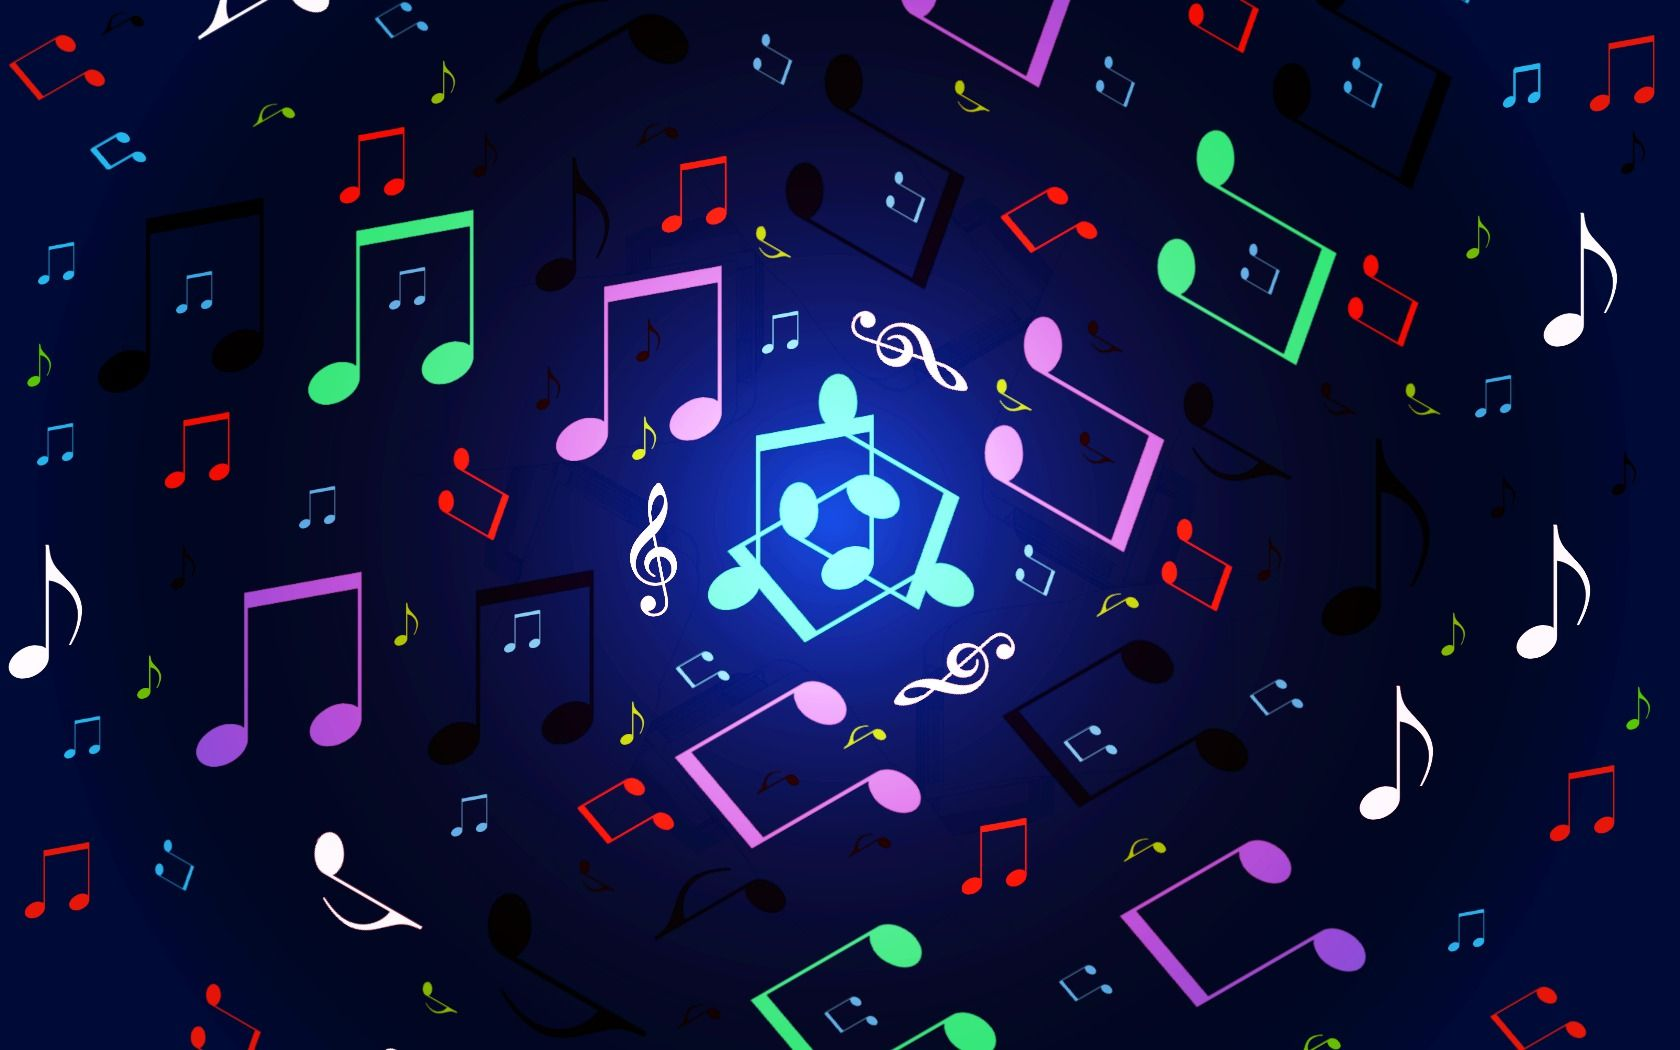 Cool Music Note Wallpapers: Http://www.0wallpapers.com